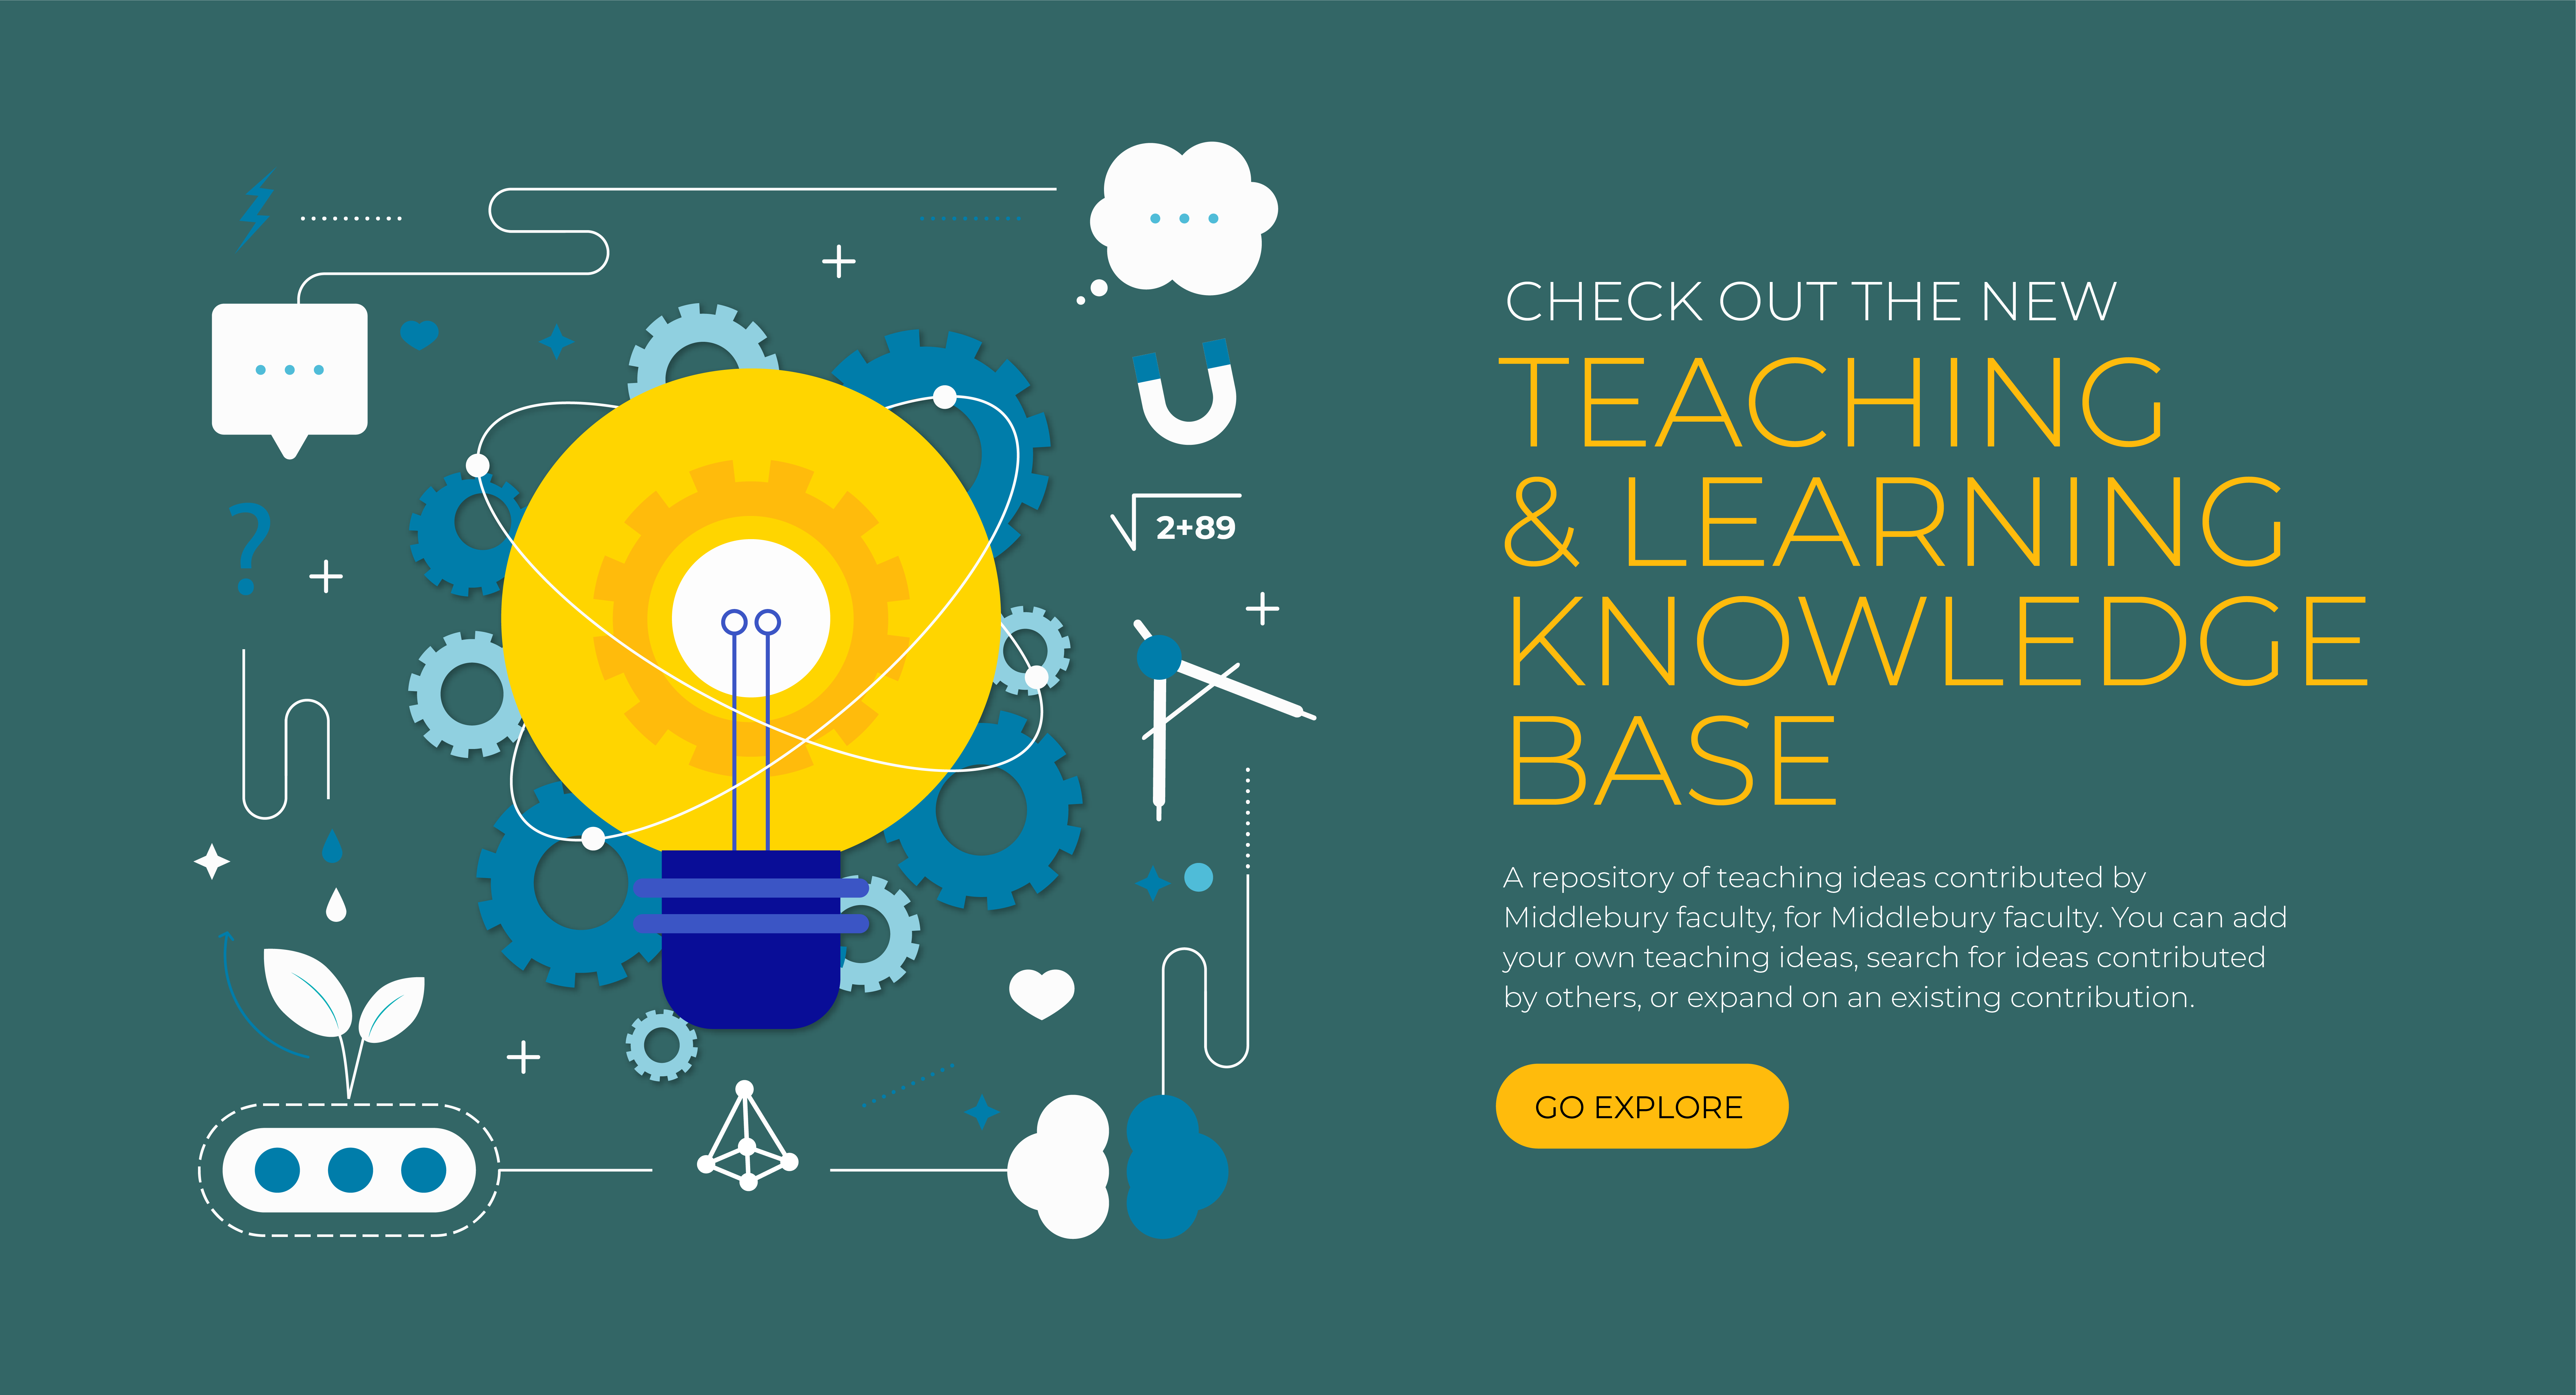 Explore Middlebury's new Teaching and Learning Knowledge Base.